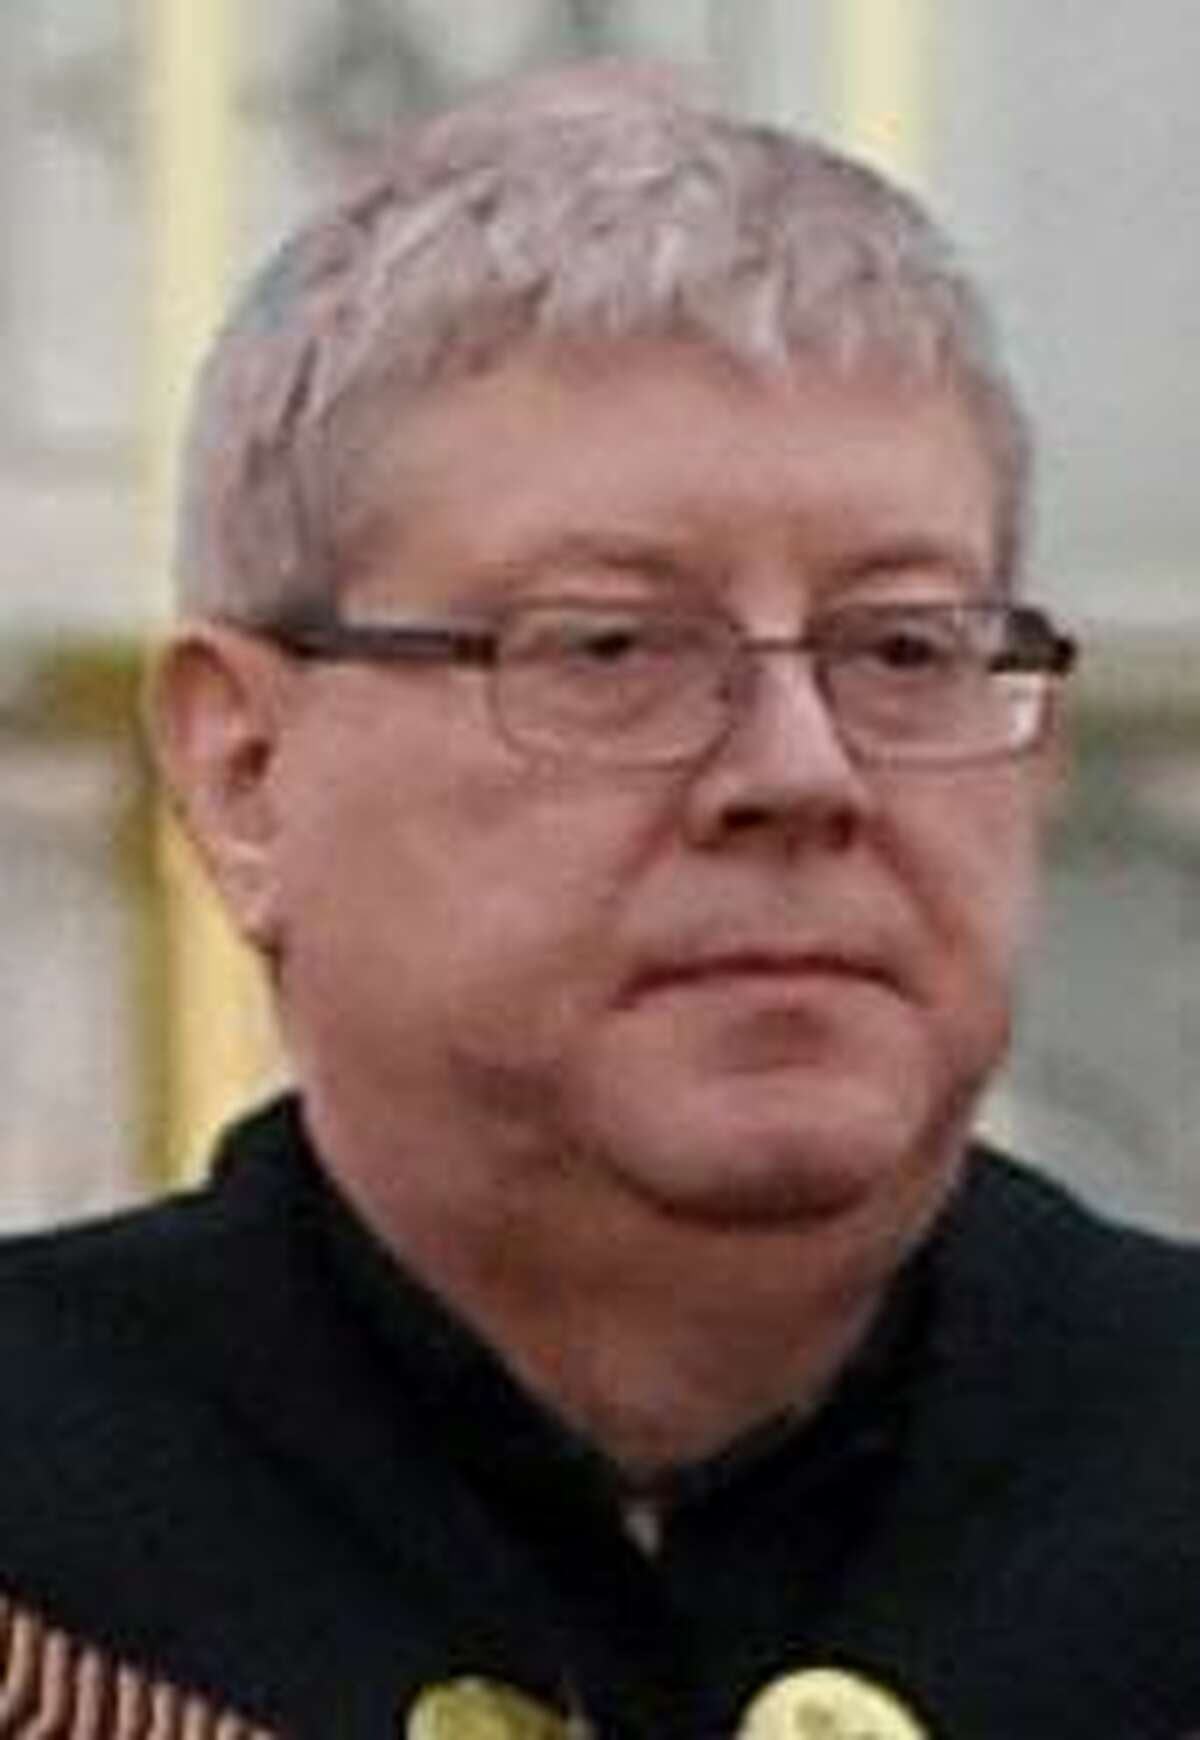 The Rev. Larry JensenJensen served eight years at the Danbury church before being transferred to St. Joseph Maronite Catholic Church in Waterville, Maine. He was removed from the priesthood in 2017 after the Tremont firm reported the claim and the Eparchy of St. Maron of Brooklyn, N.Y., determined it was